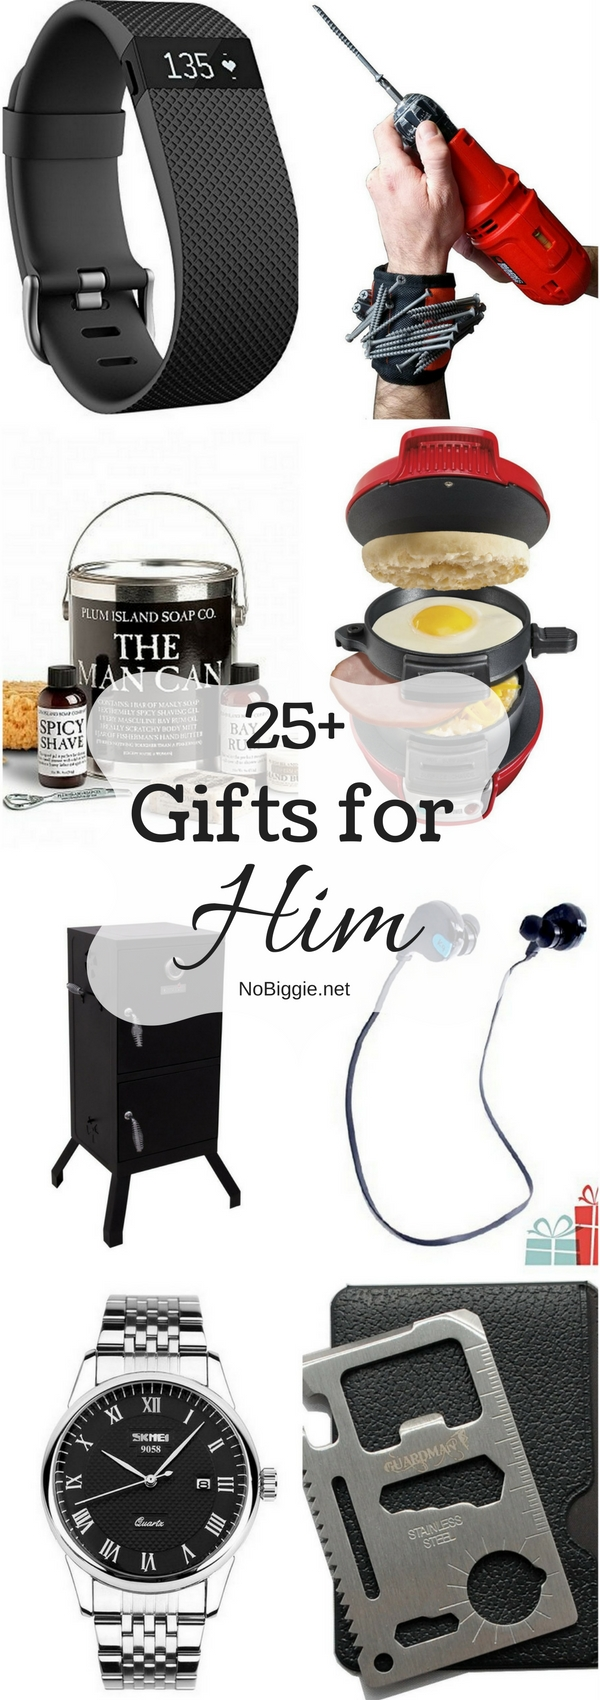 25+ Gifts for Him | NoBiggie.net